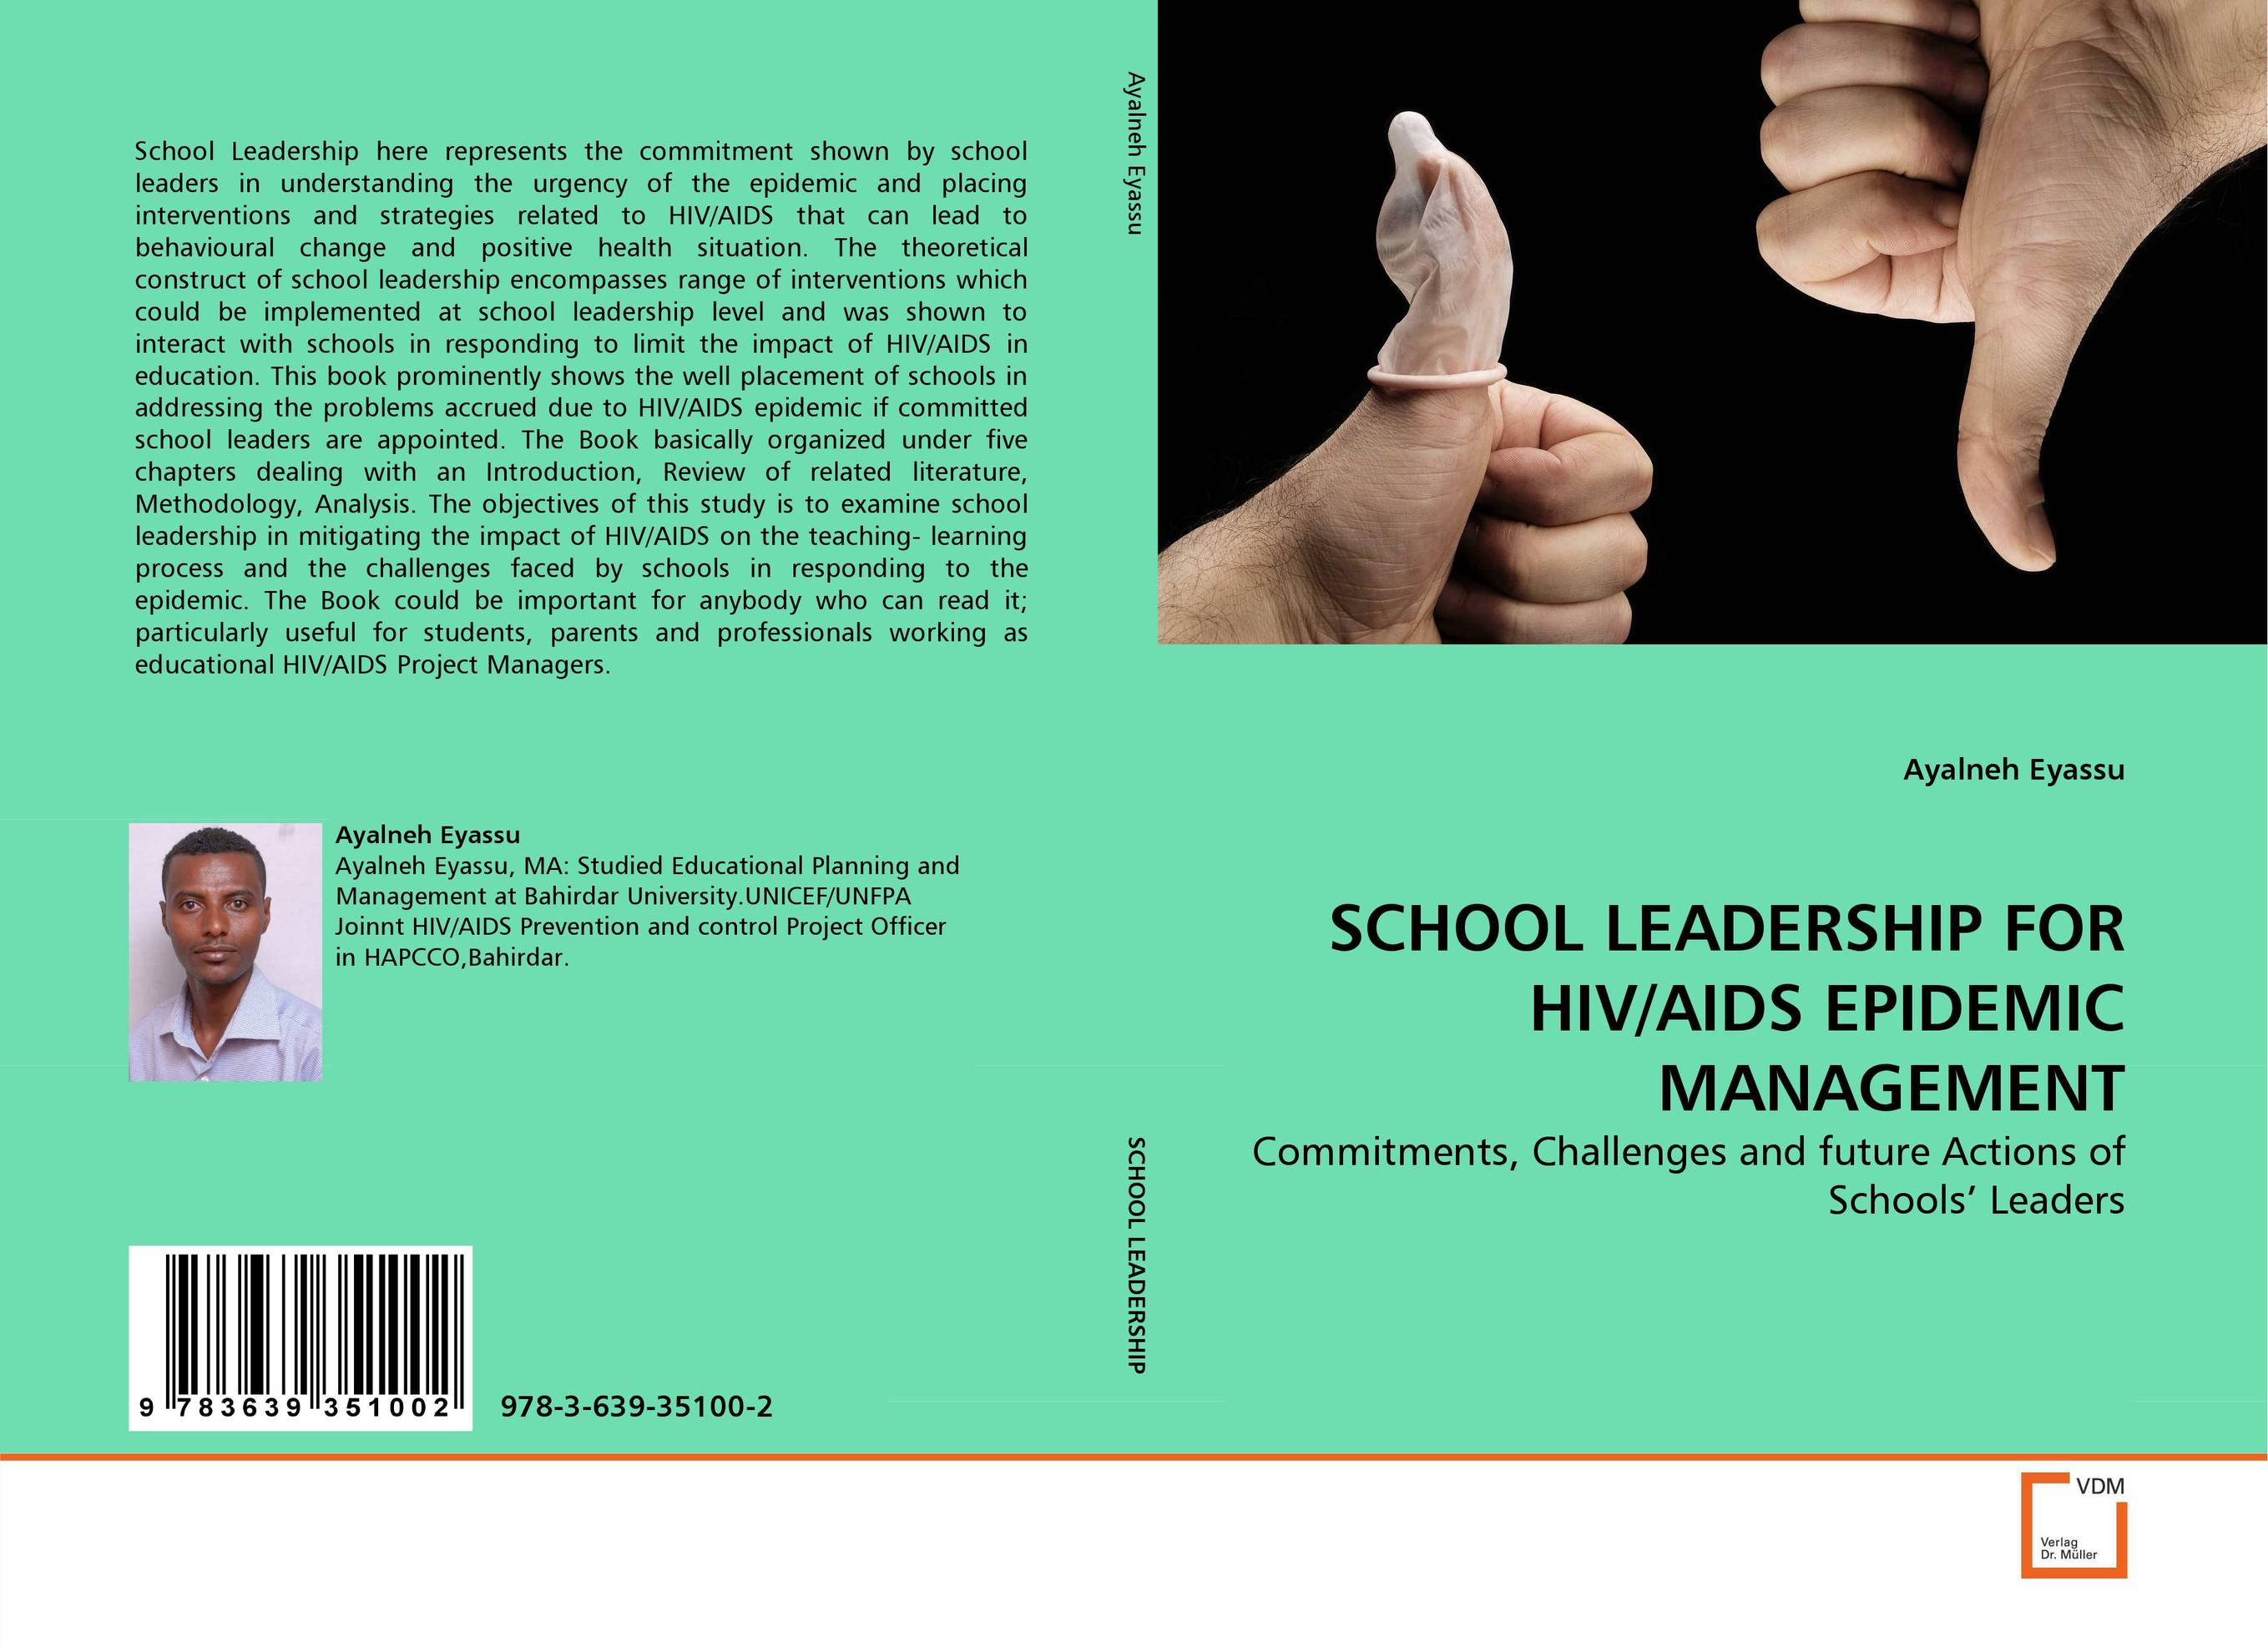 SCHOOL LEADERSHIP FOR HIV/AIDS EPIDEMIC MANAGEMENT role of school leadership in promoting moral integrity among students